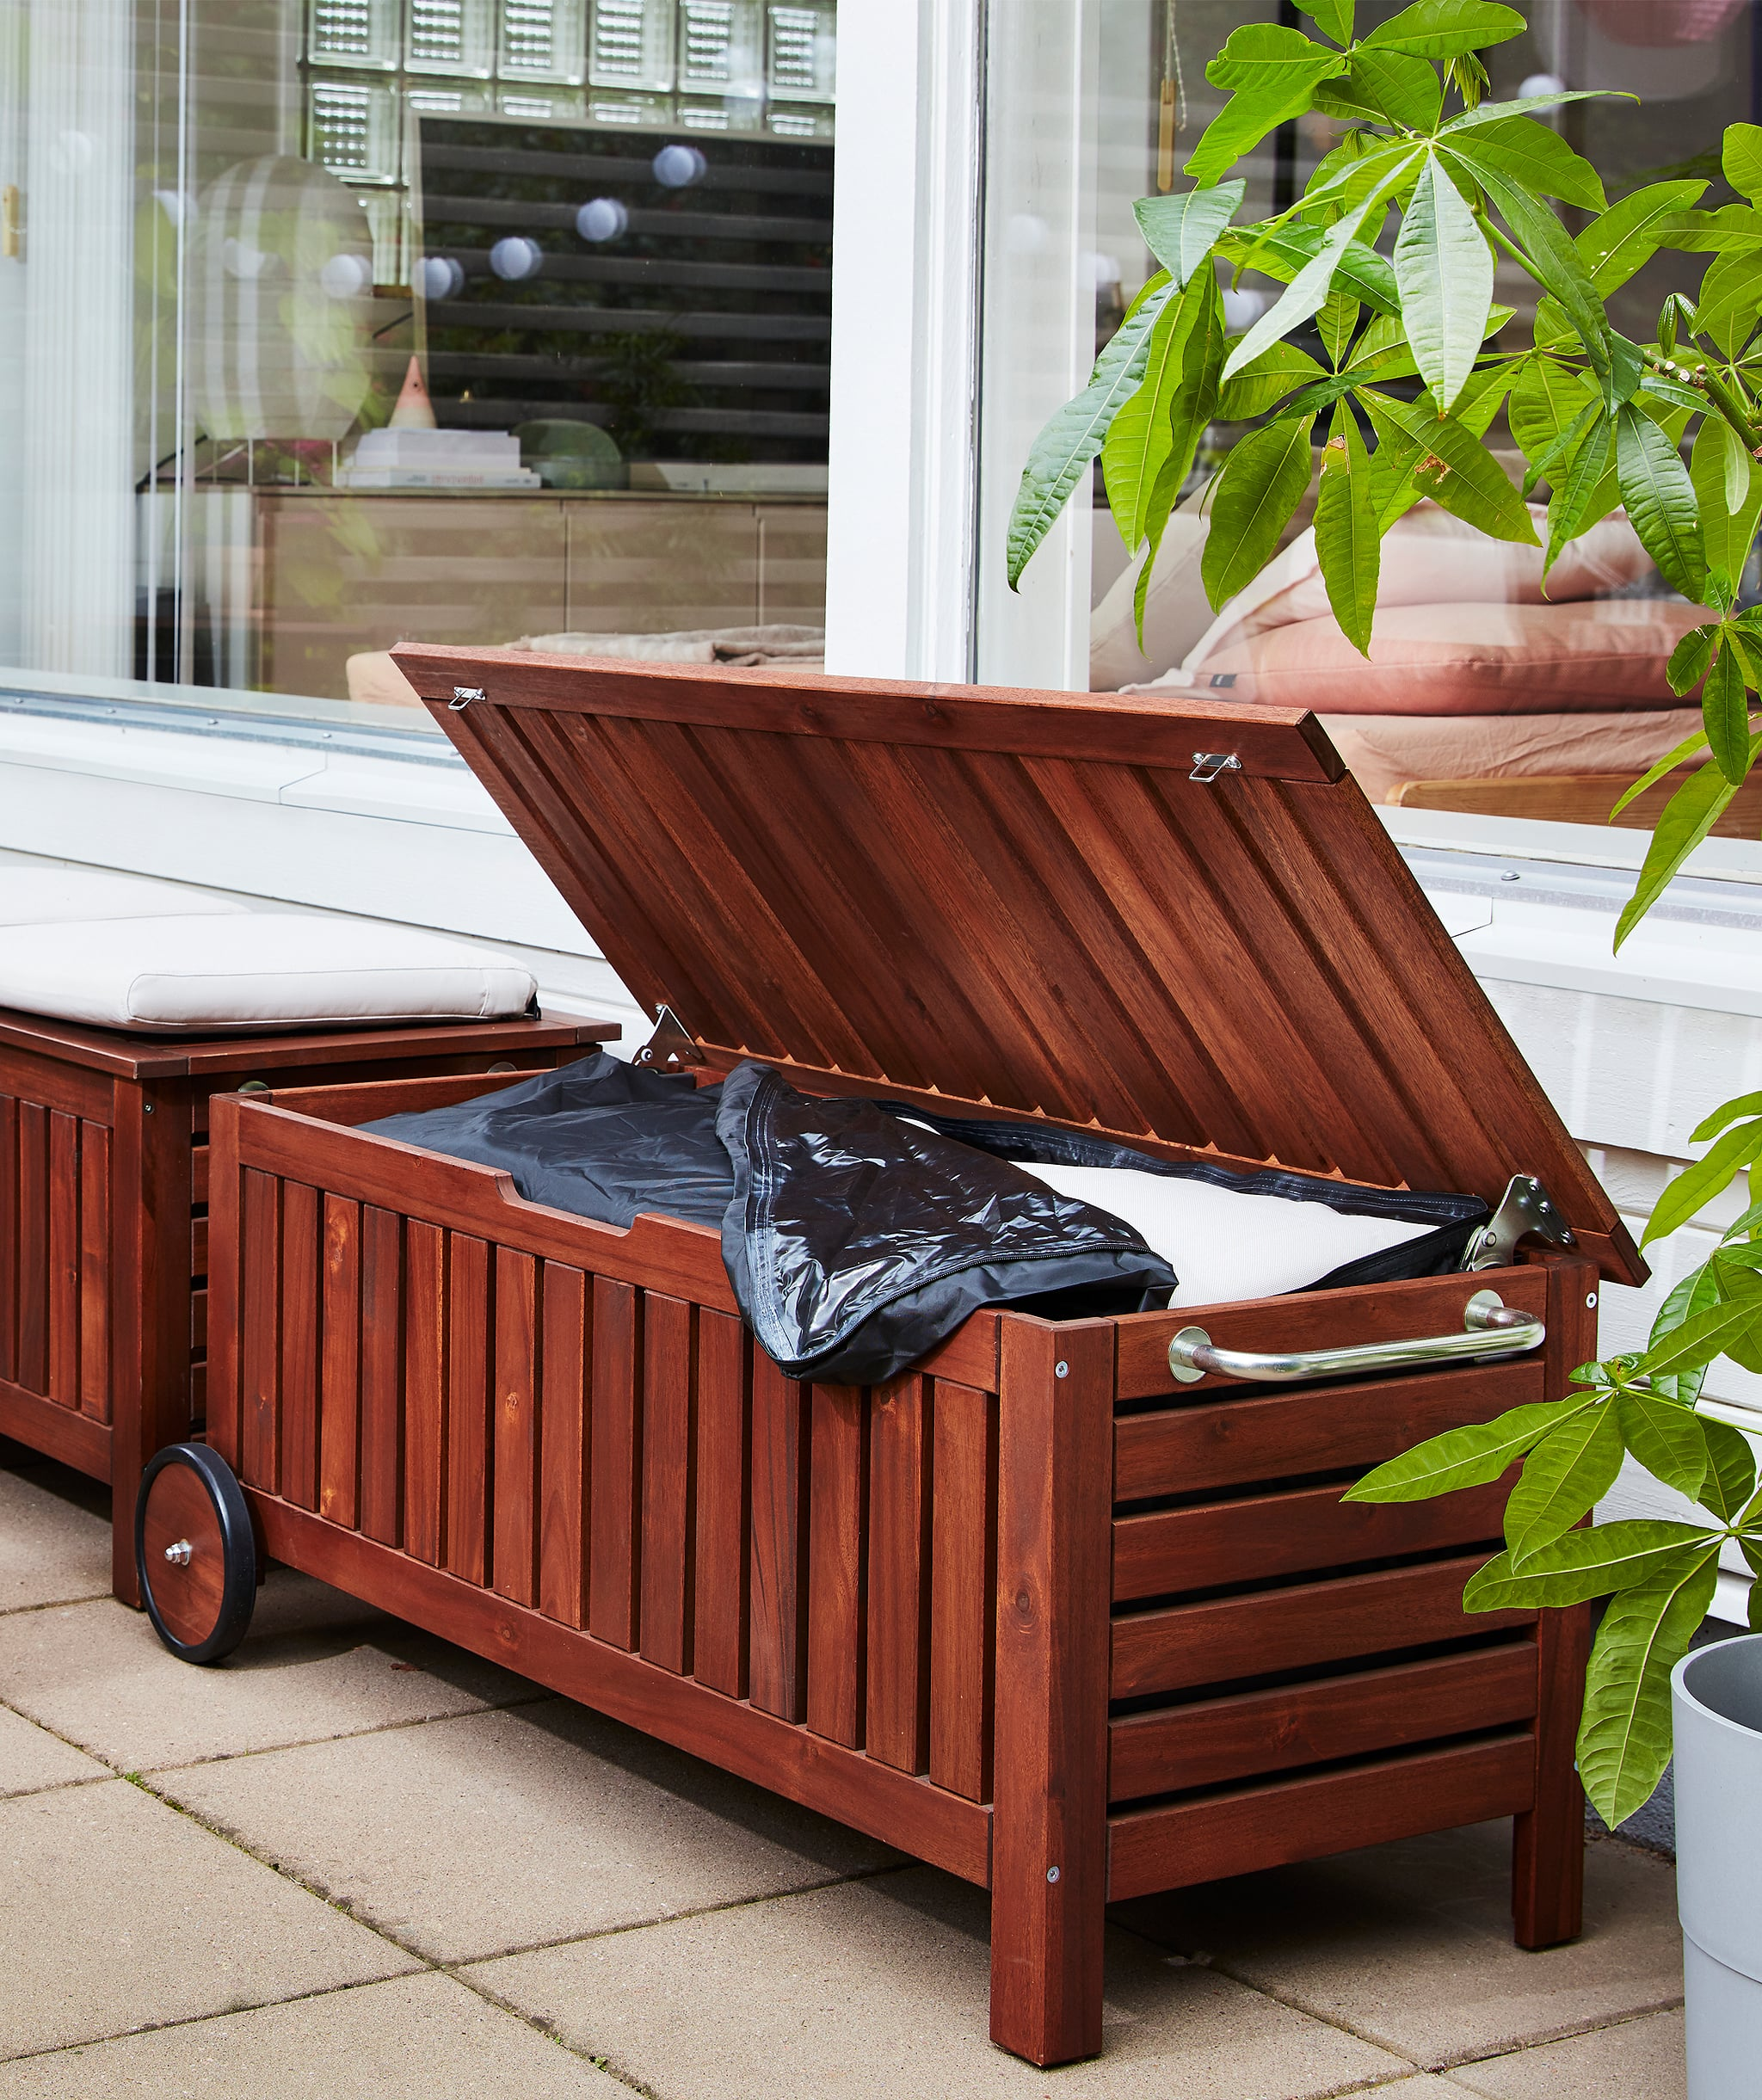 Two dark wooden storage benches on a terrace. One has its lid open and shows outdoor cushions inside.